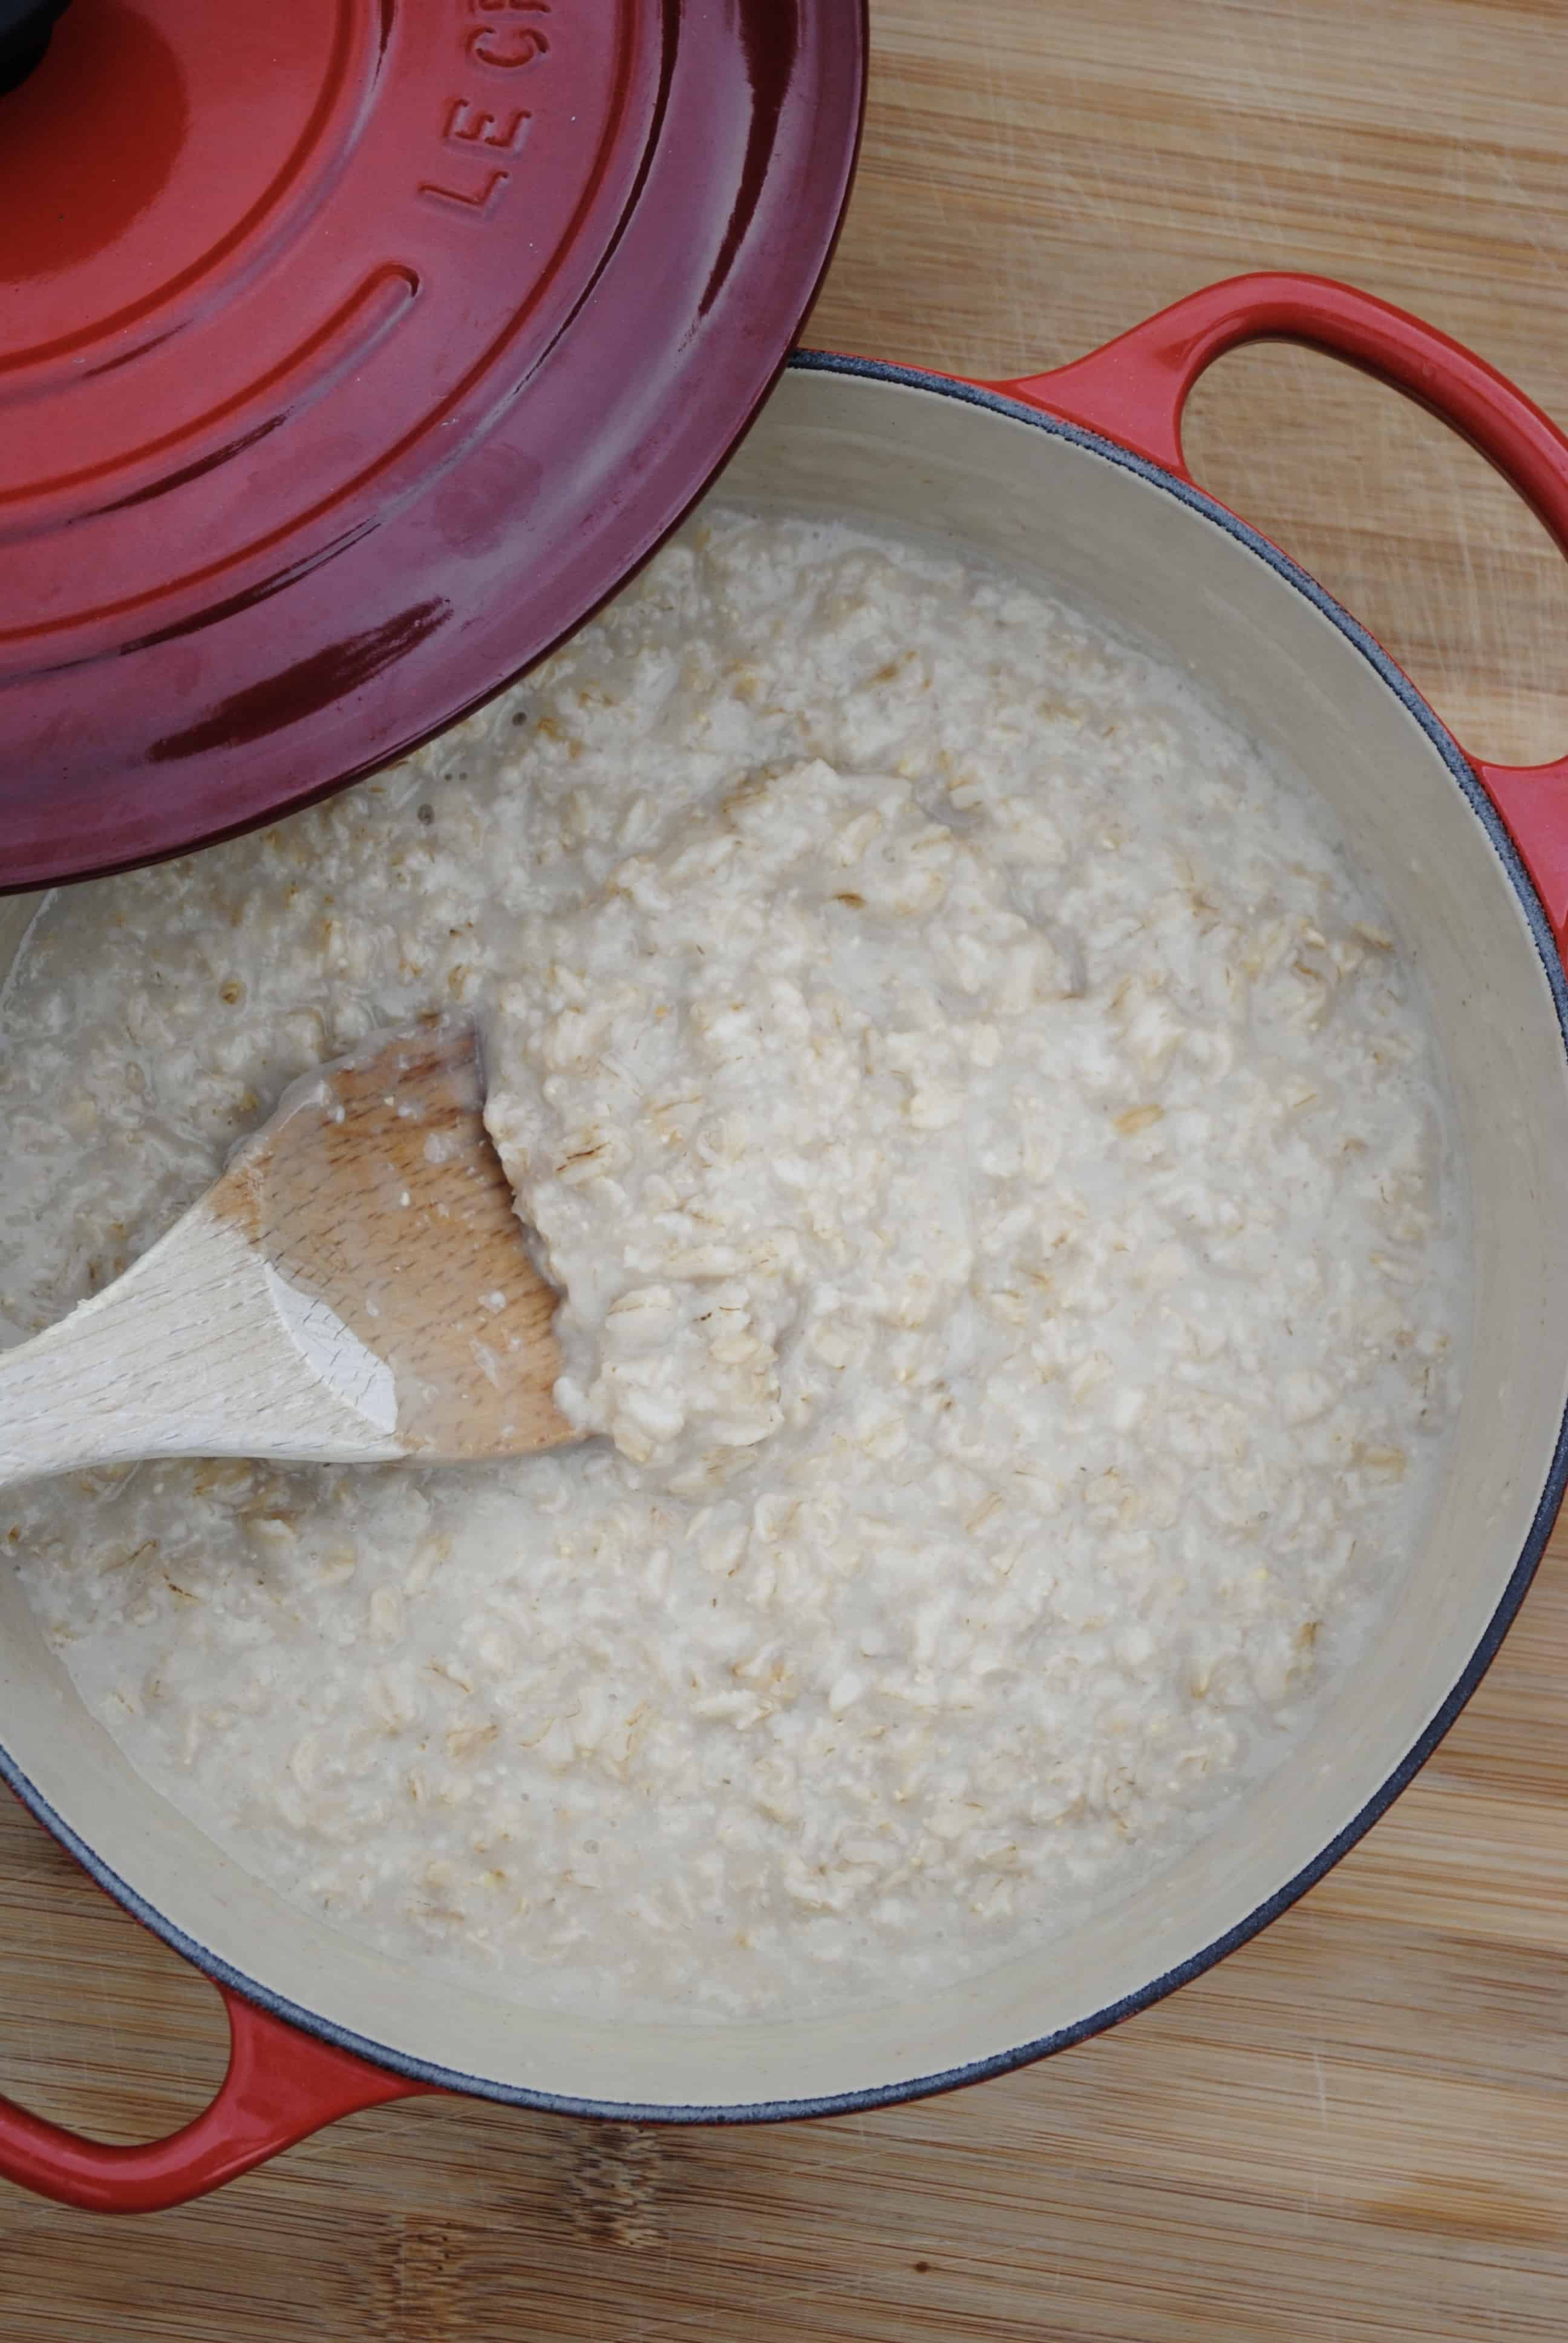 Oatmeal in a red pot